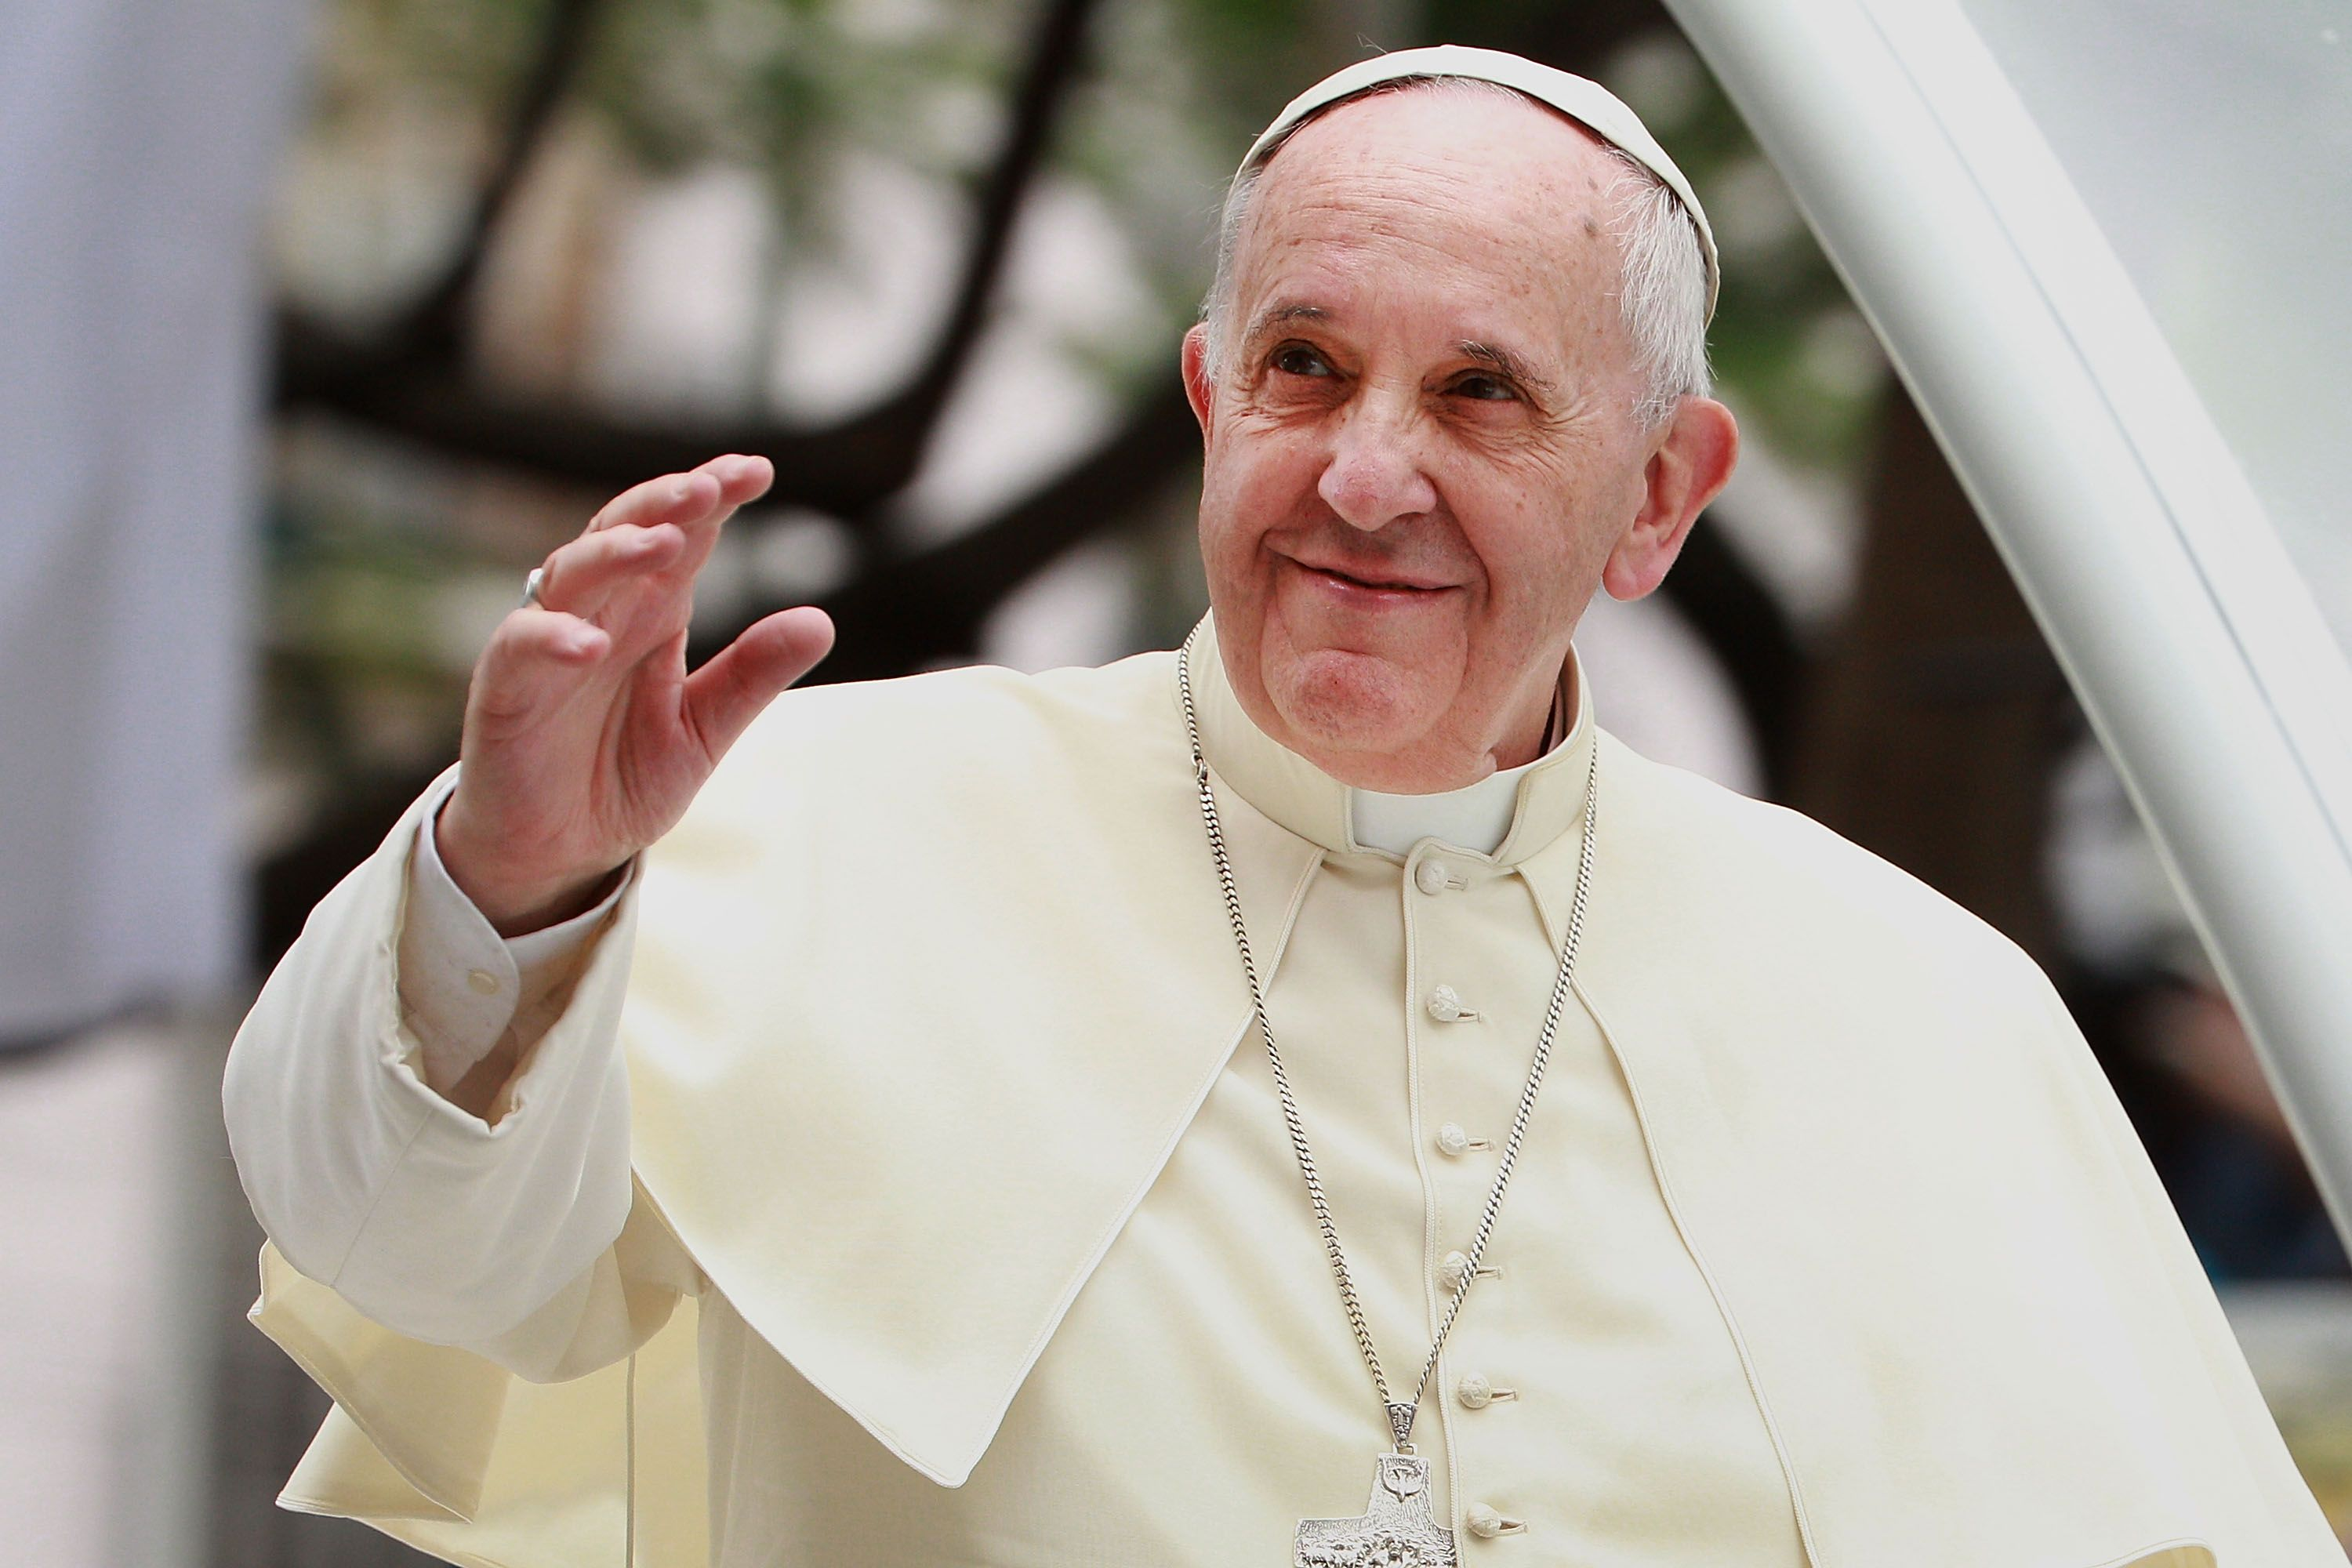 Pope Francis Joins the War on Christmas